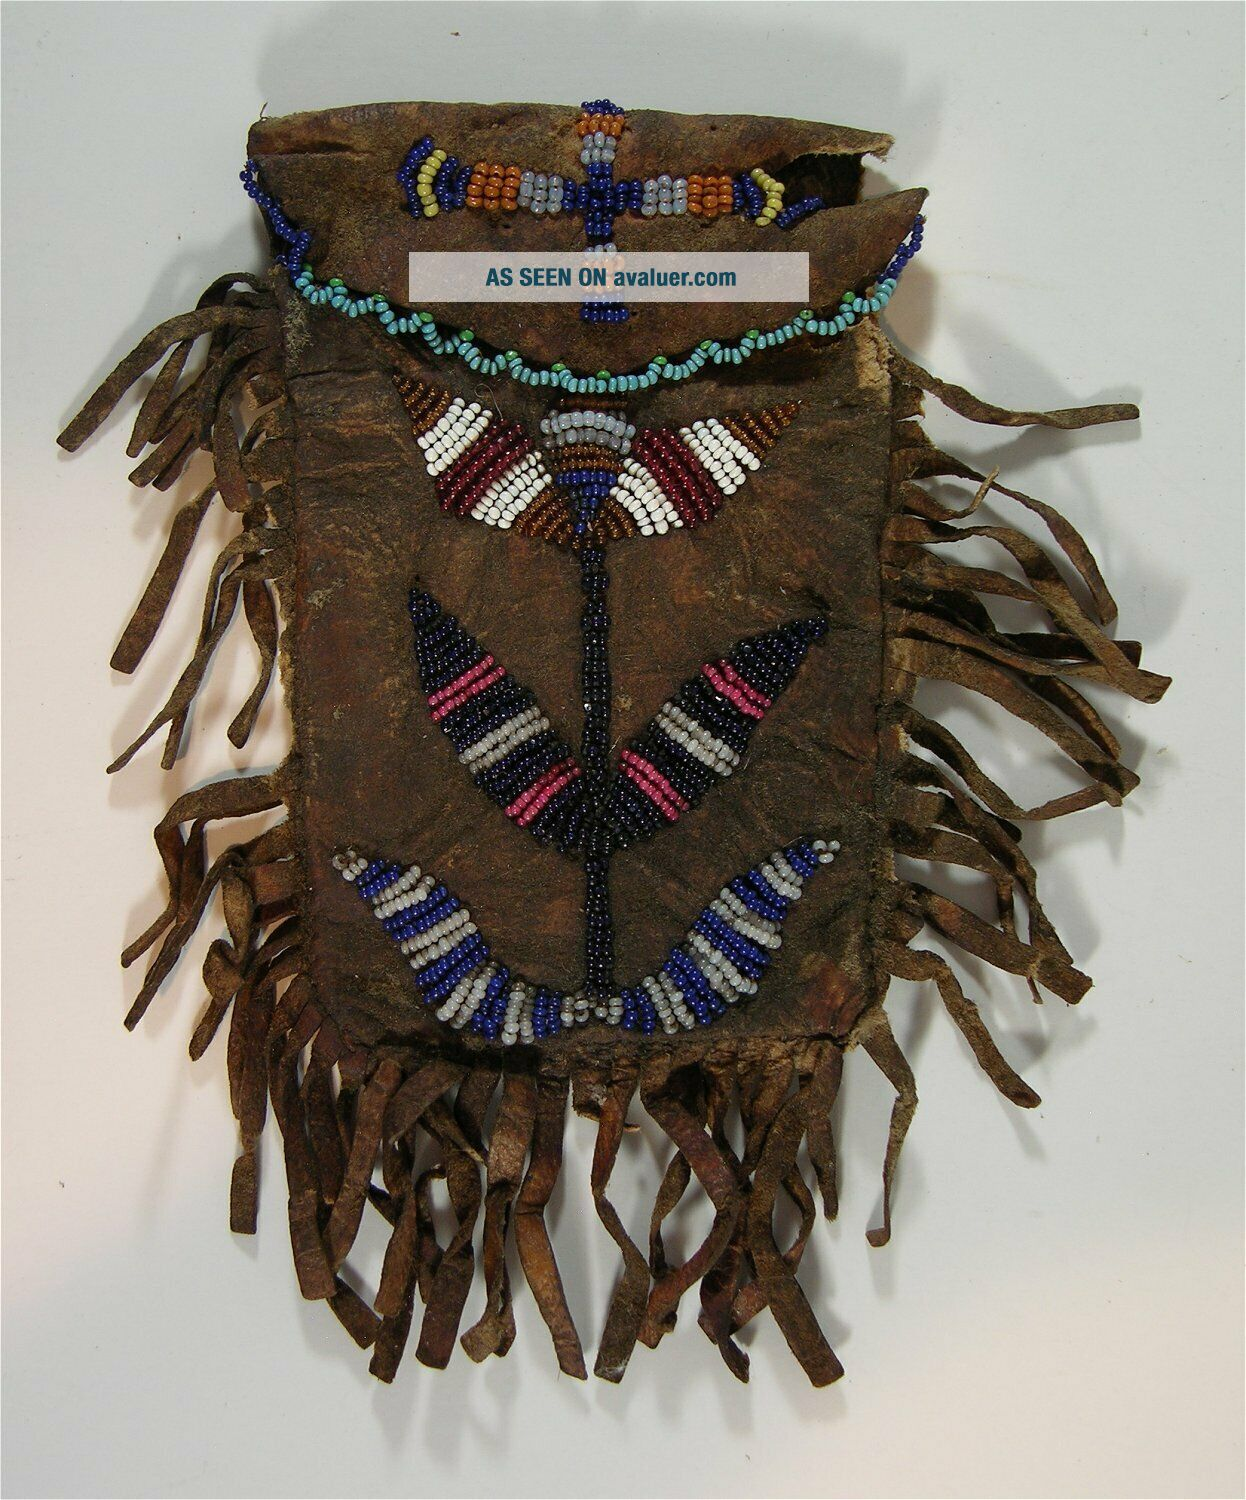 1880s NATIVE AMERICAN PLAINS / SIOUX INDIAN BEAD DECORATED POUCH MEDICINE BAG